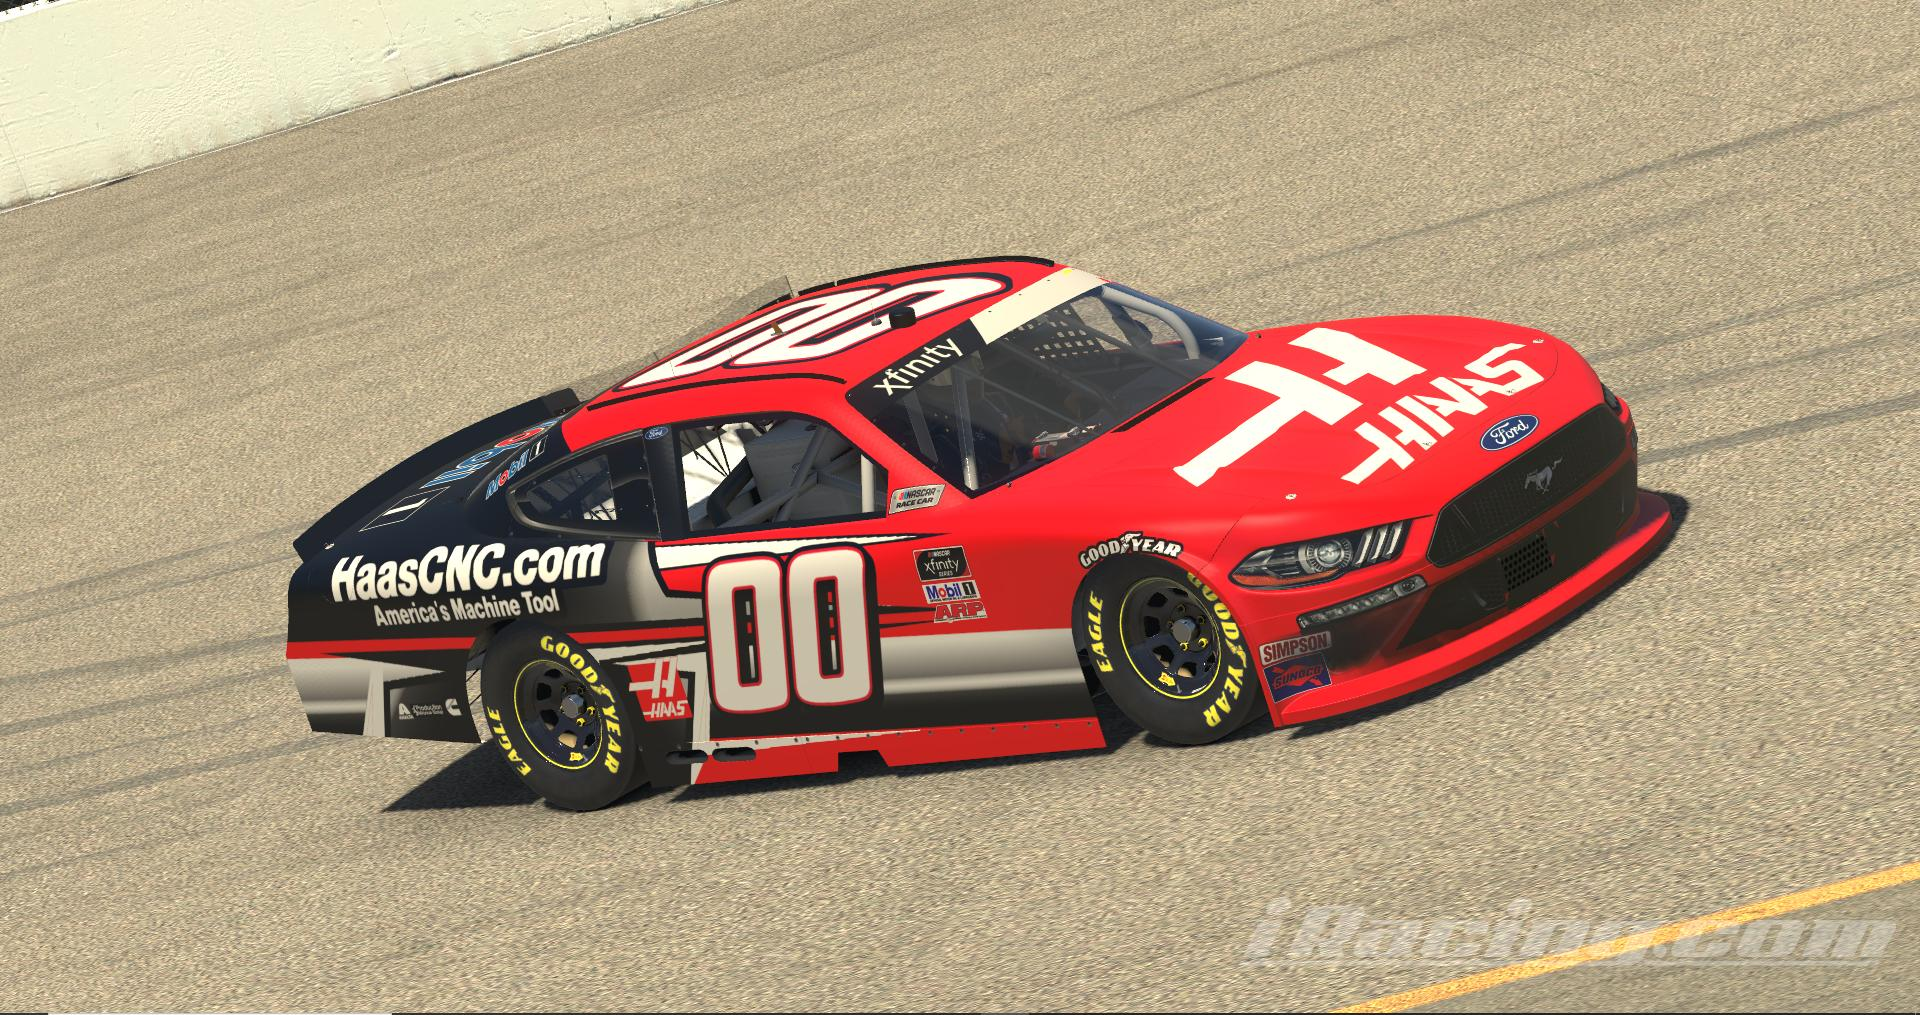 Preview of 2021 Stewart HAAS Xfinity/Kyle Larson Fictional CUSTOM # by Tanner Tallarico